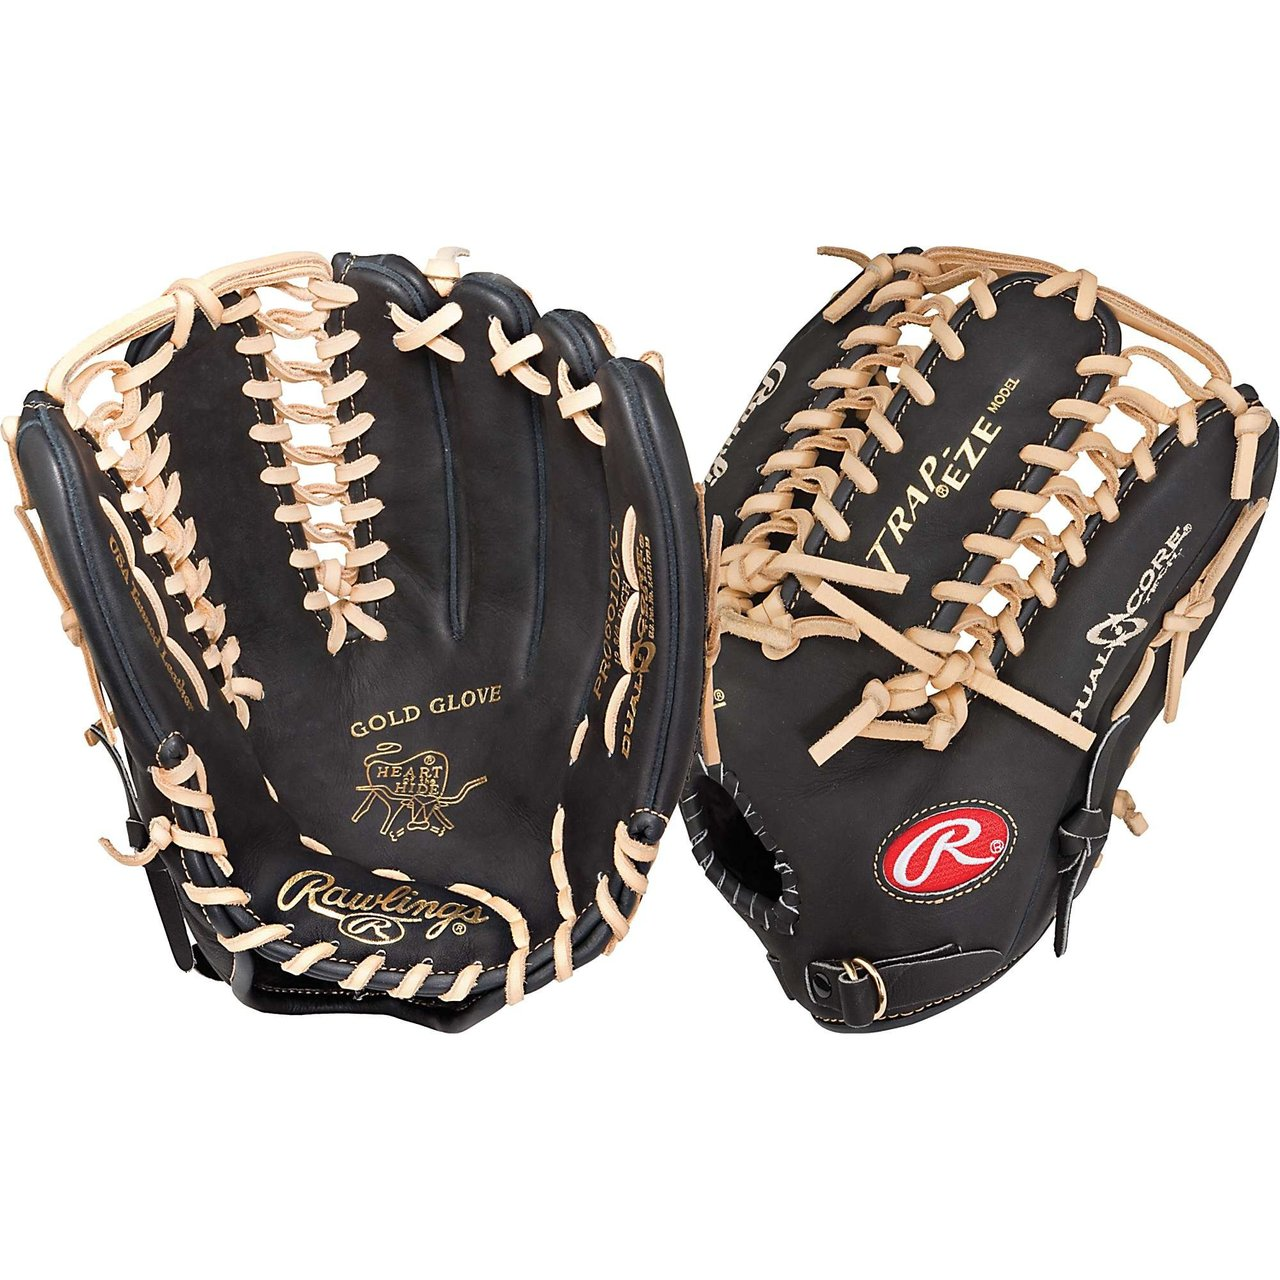 rawlings-pro601dcc-heart-of-the-hide-12-75-inch-dual-core-baseball-glove-left-hand-throw PRO601DCC-Left Hand Throw Rawlings New Rawlings PRO601DCC Heart of the Hide 12.75 inch Dual Core Baseball